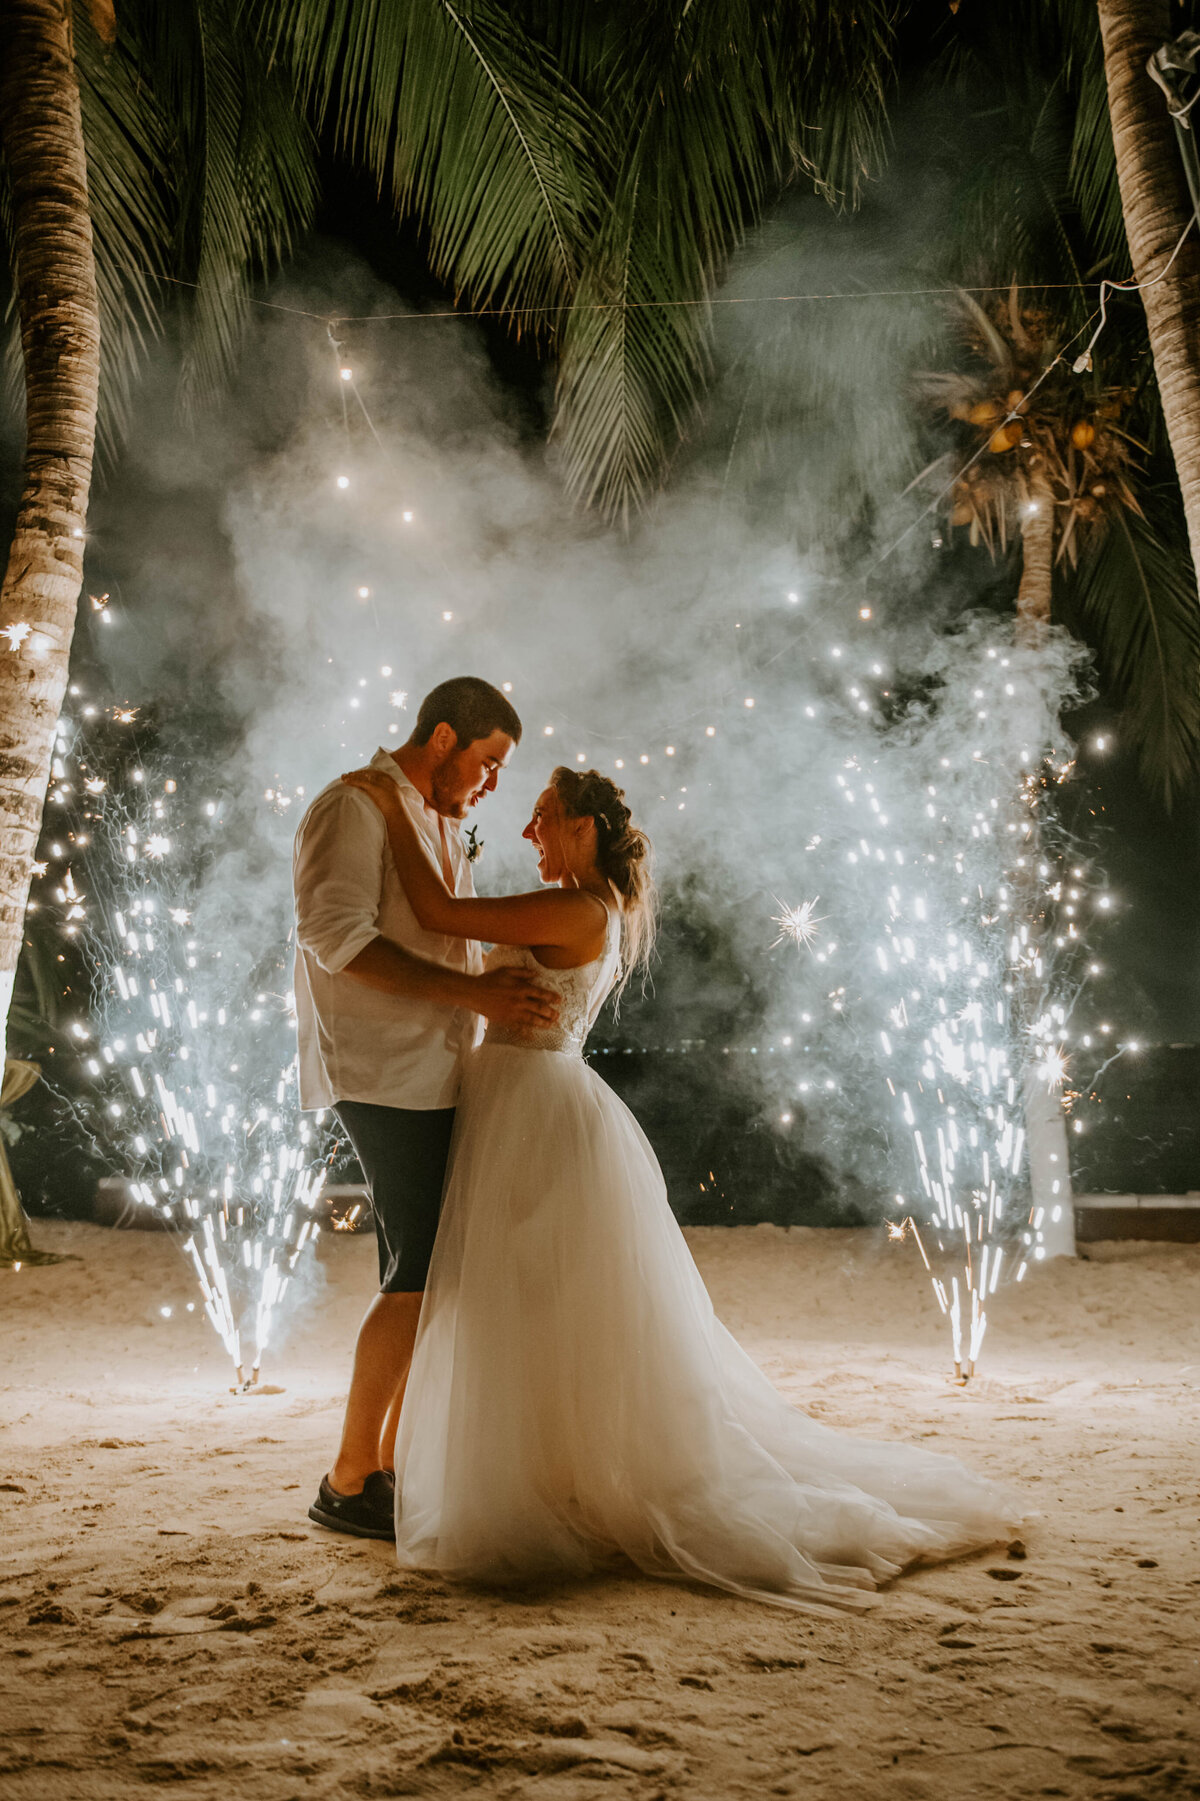 isla-mujeres-wedding-photographer-guthrie-zama-mexico-tulum-cancun-beach-destination-1814